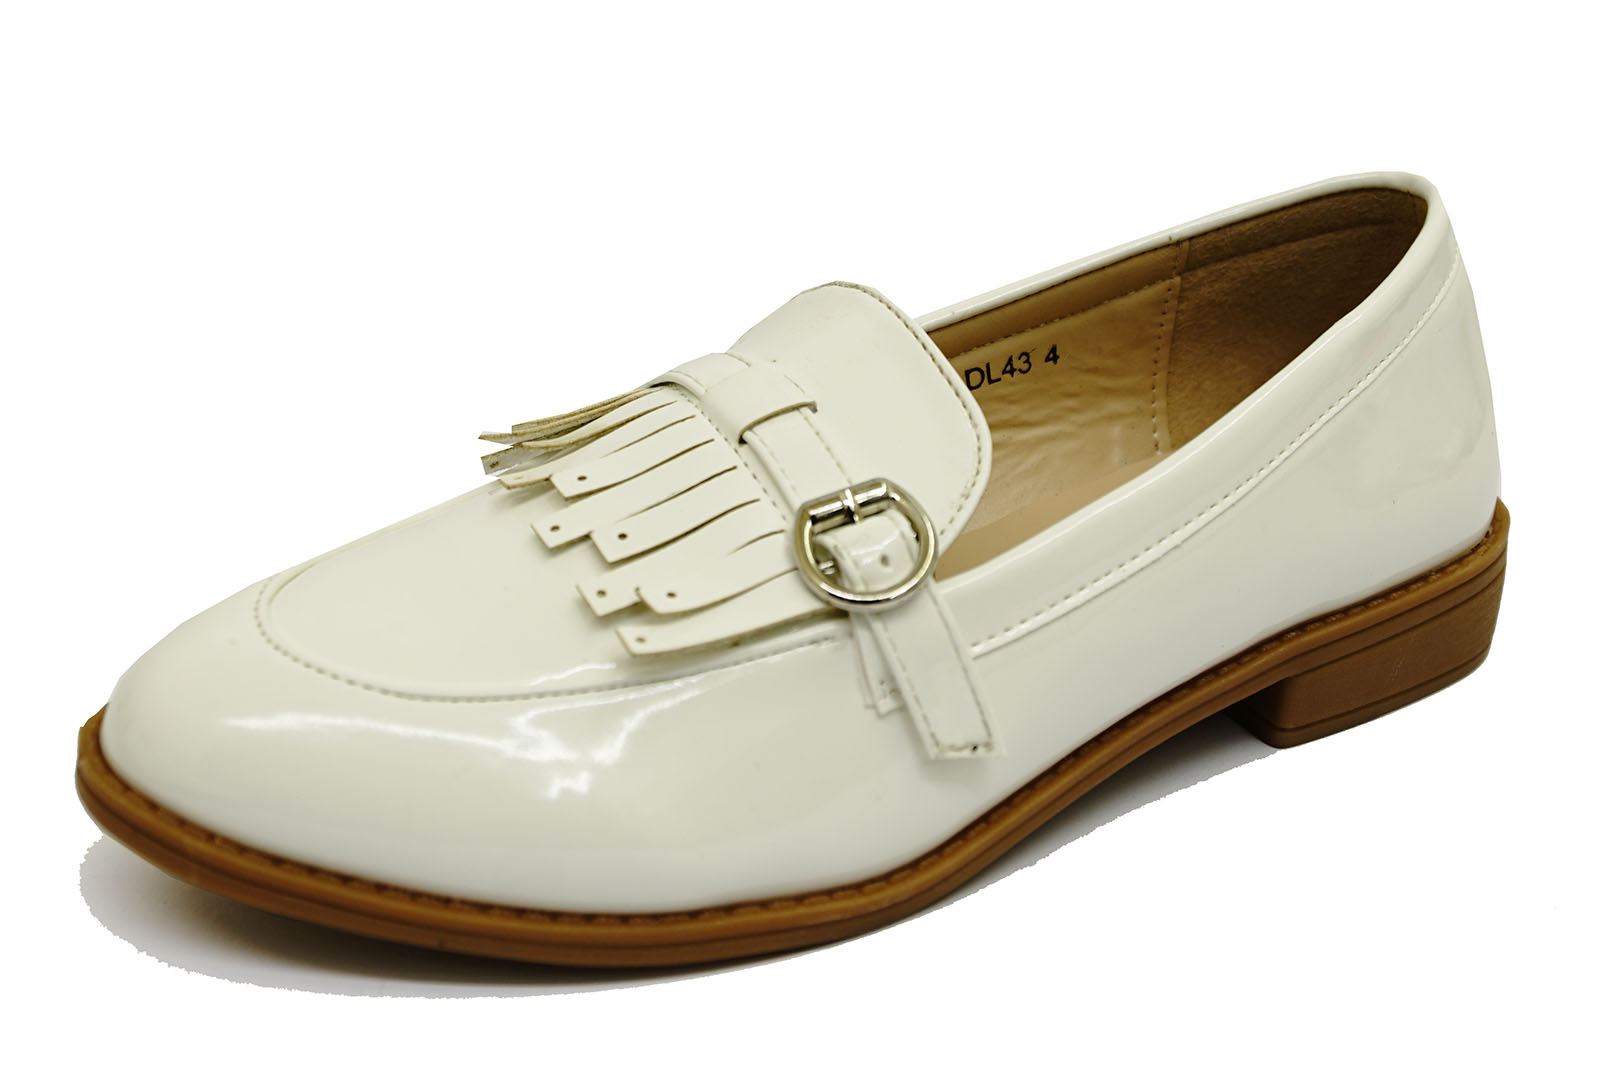 b992024a294 CENTINELA BLANCO SLIP-ON ZAPATOS MOCASÍN TRABAJO SMART CASUAL ZAPATOS  PLANOS COMFY UK 3-8